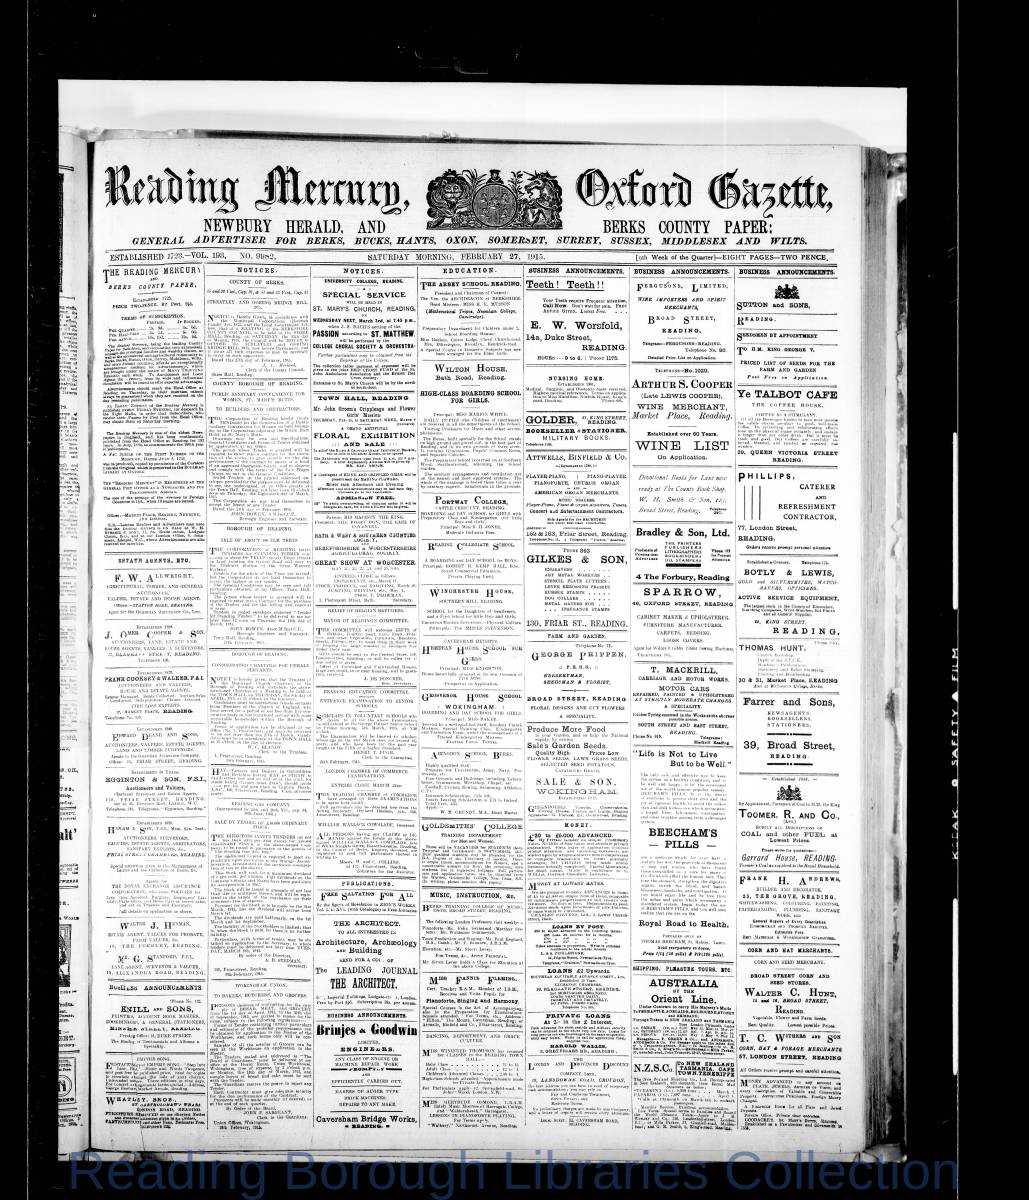 Reading Mercury Oxford Gazette Saturday, February 27, 1915. Pg 1